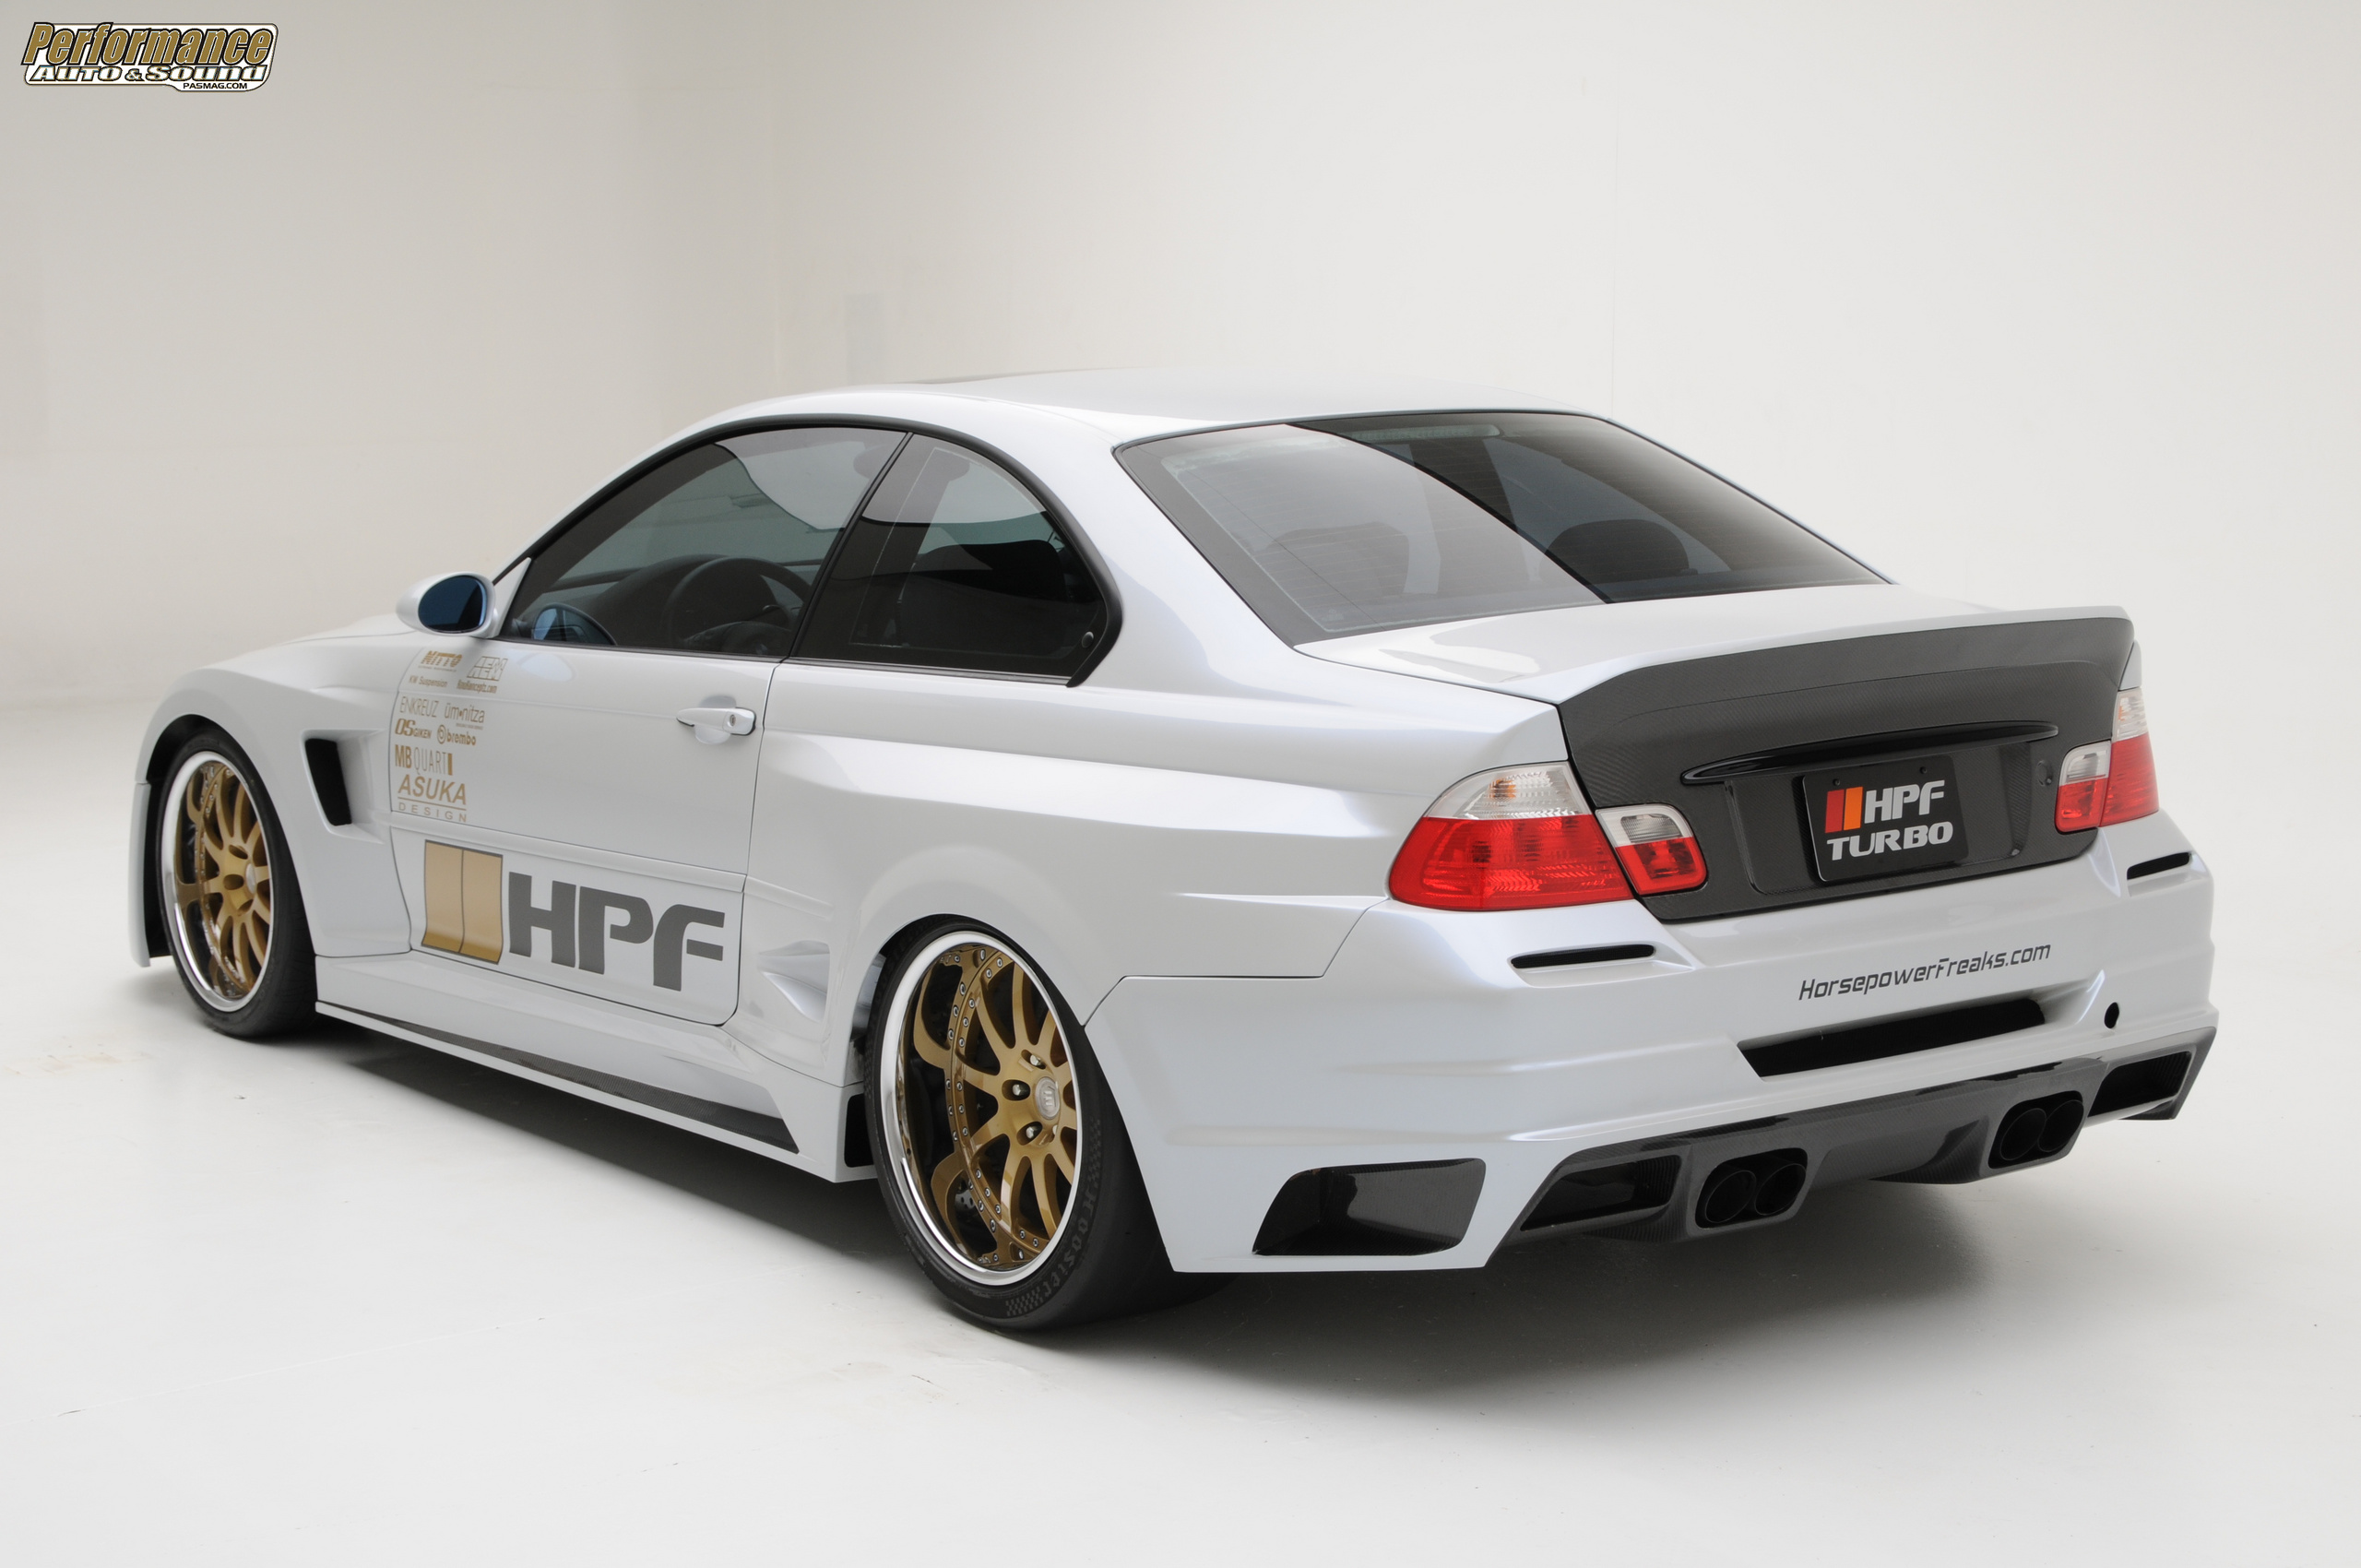 bmw e46 m3 turbo by hpf bmw photo 28155933 fanpop. Black Bedroom Furniture Sets. Home Design Ideas